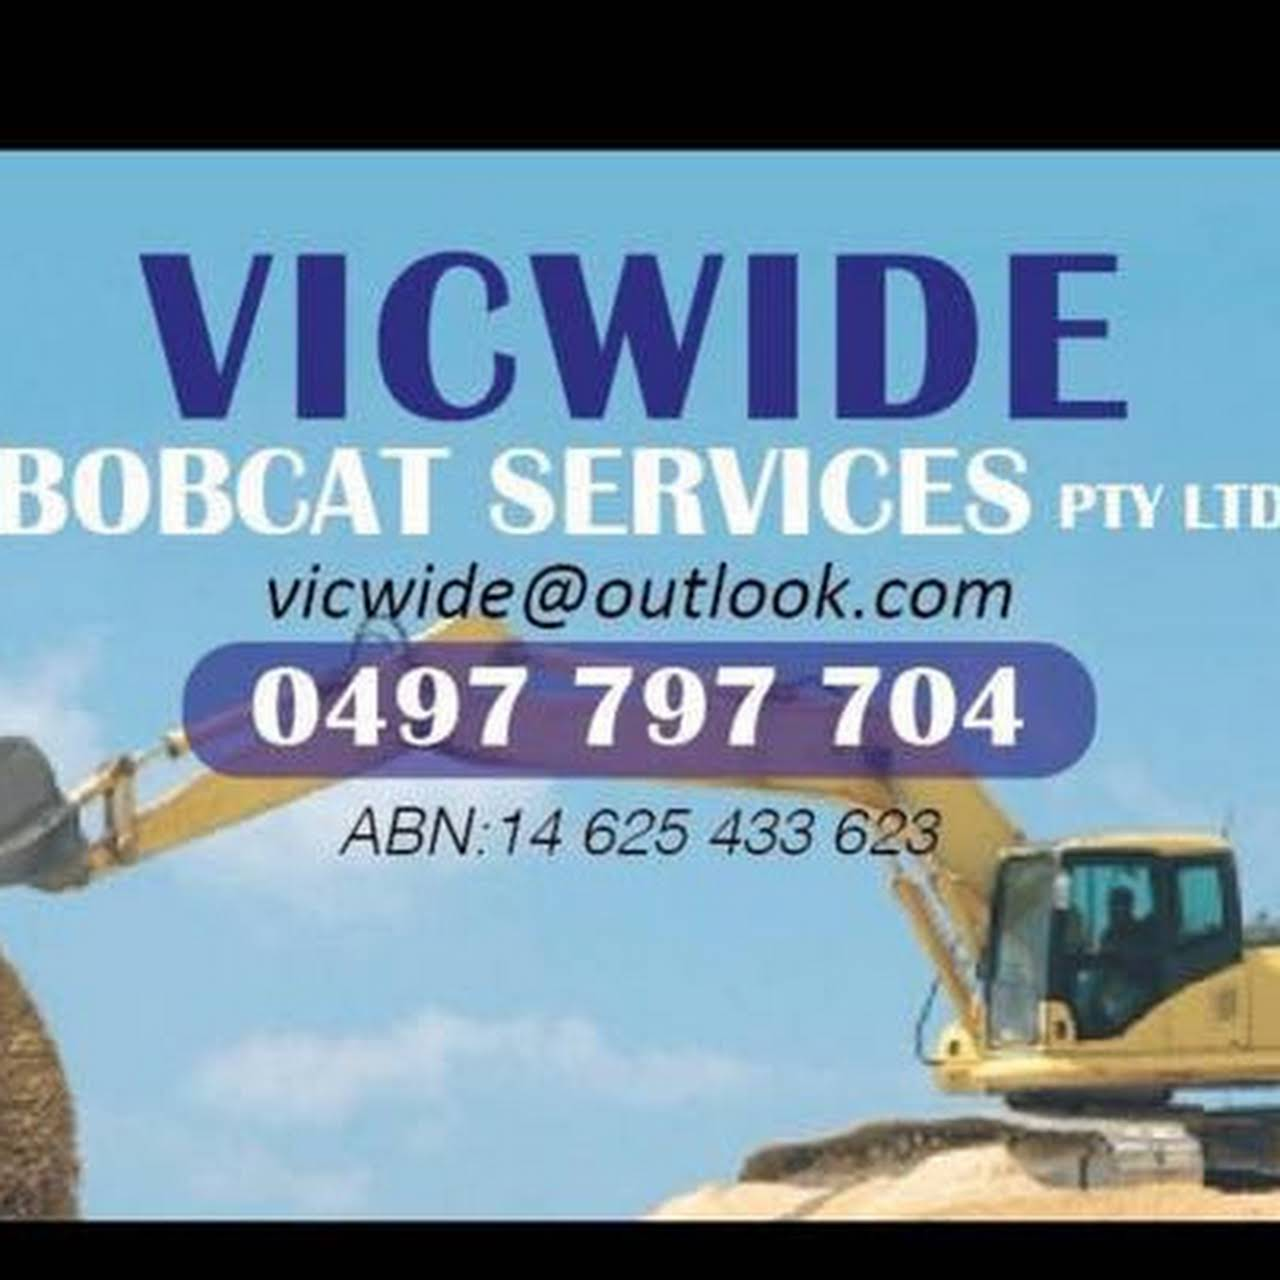 Vicwide Bobcat Services